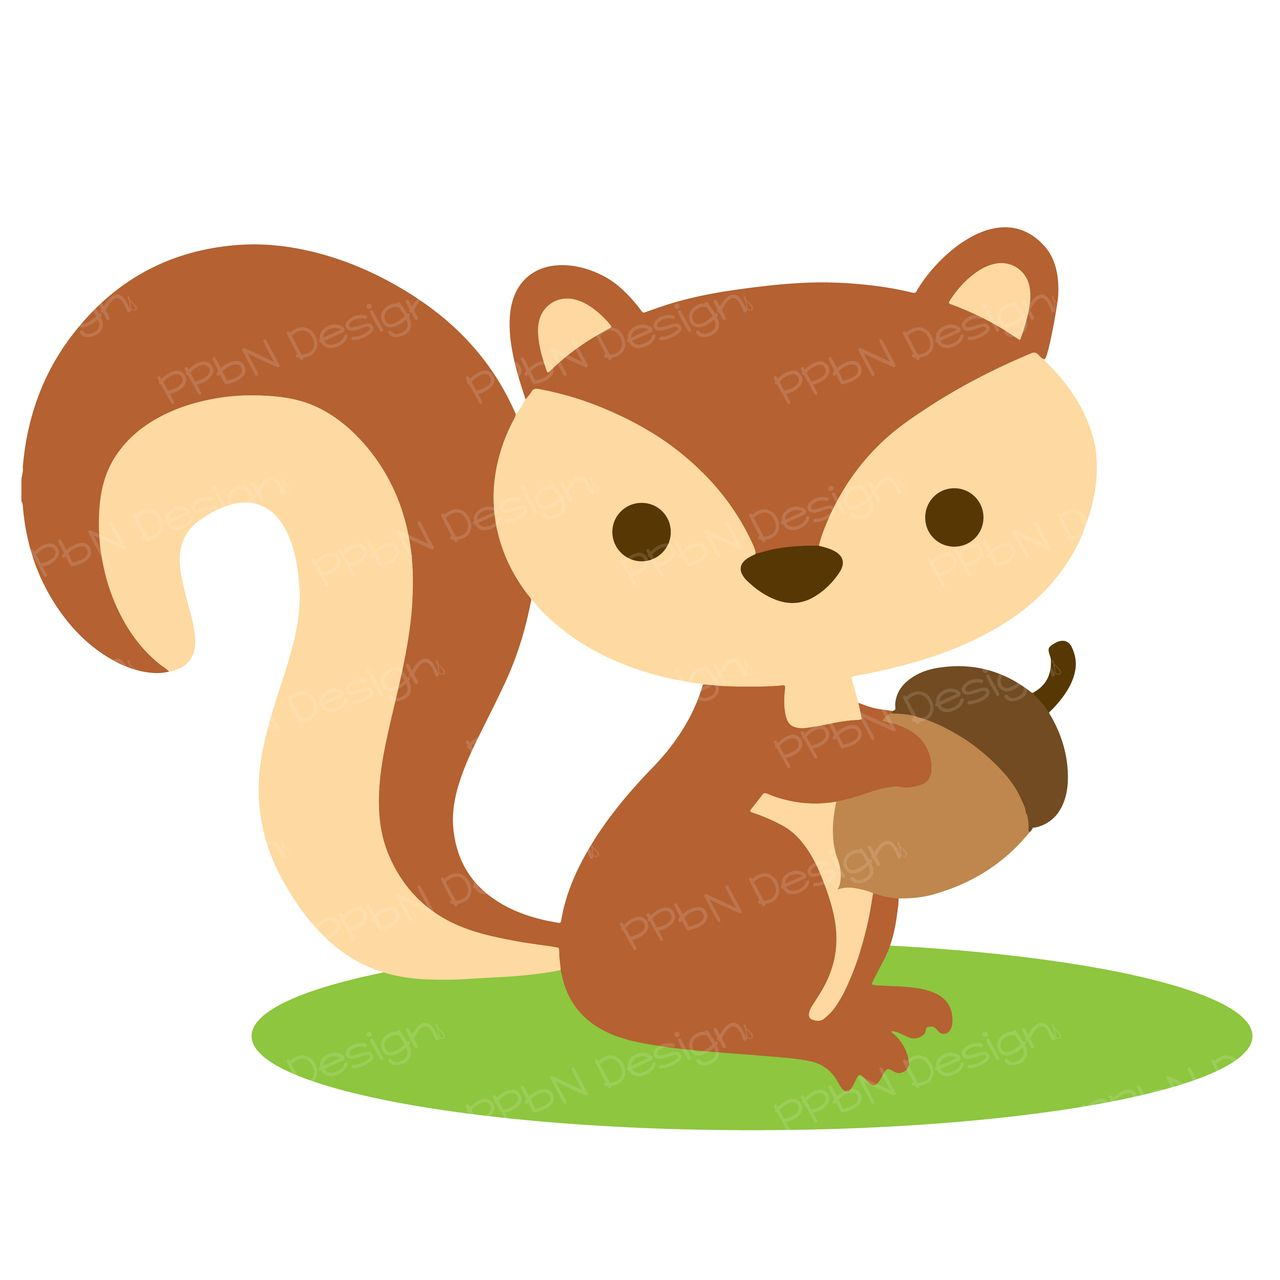 Clipart squirrel woodland. Pin by lisa denny